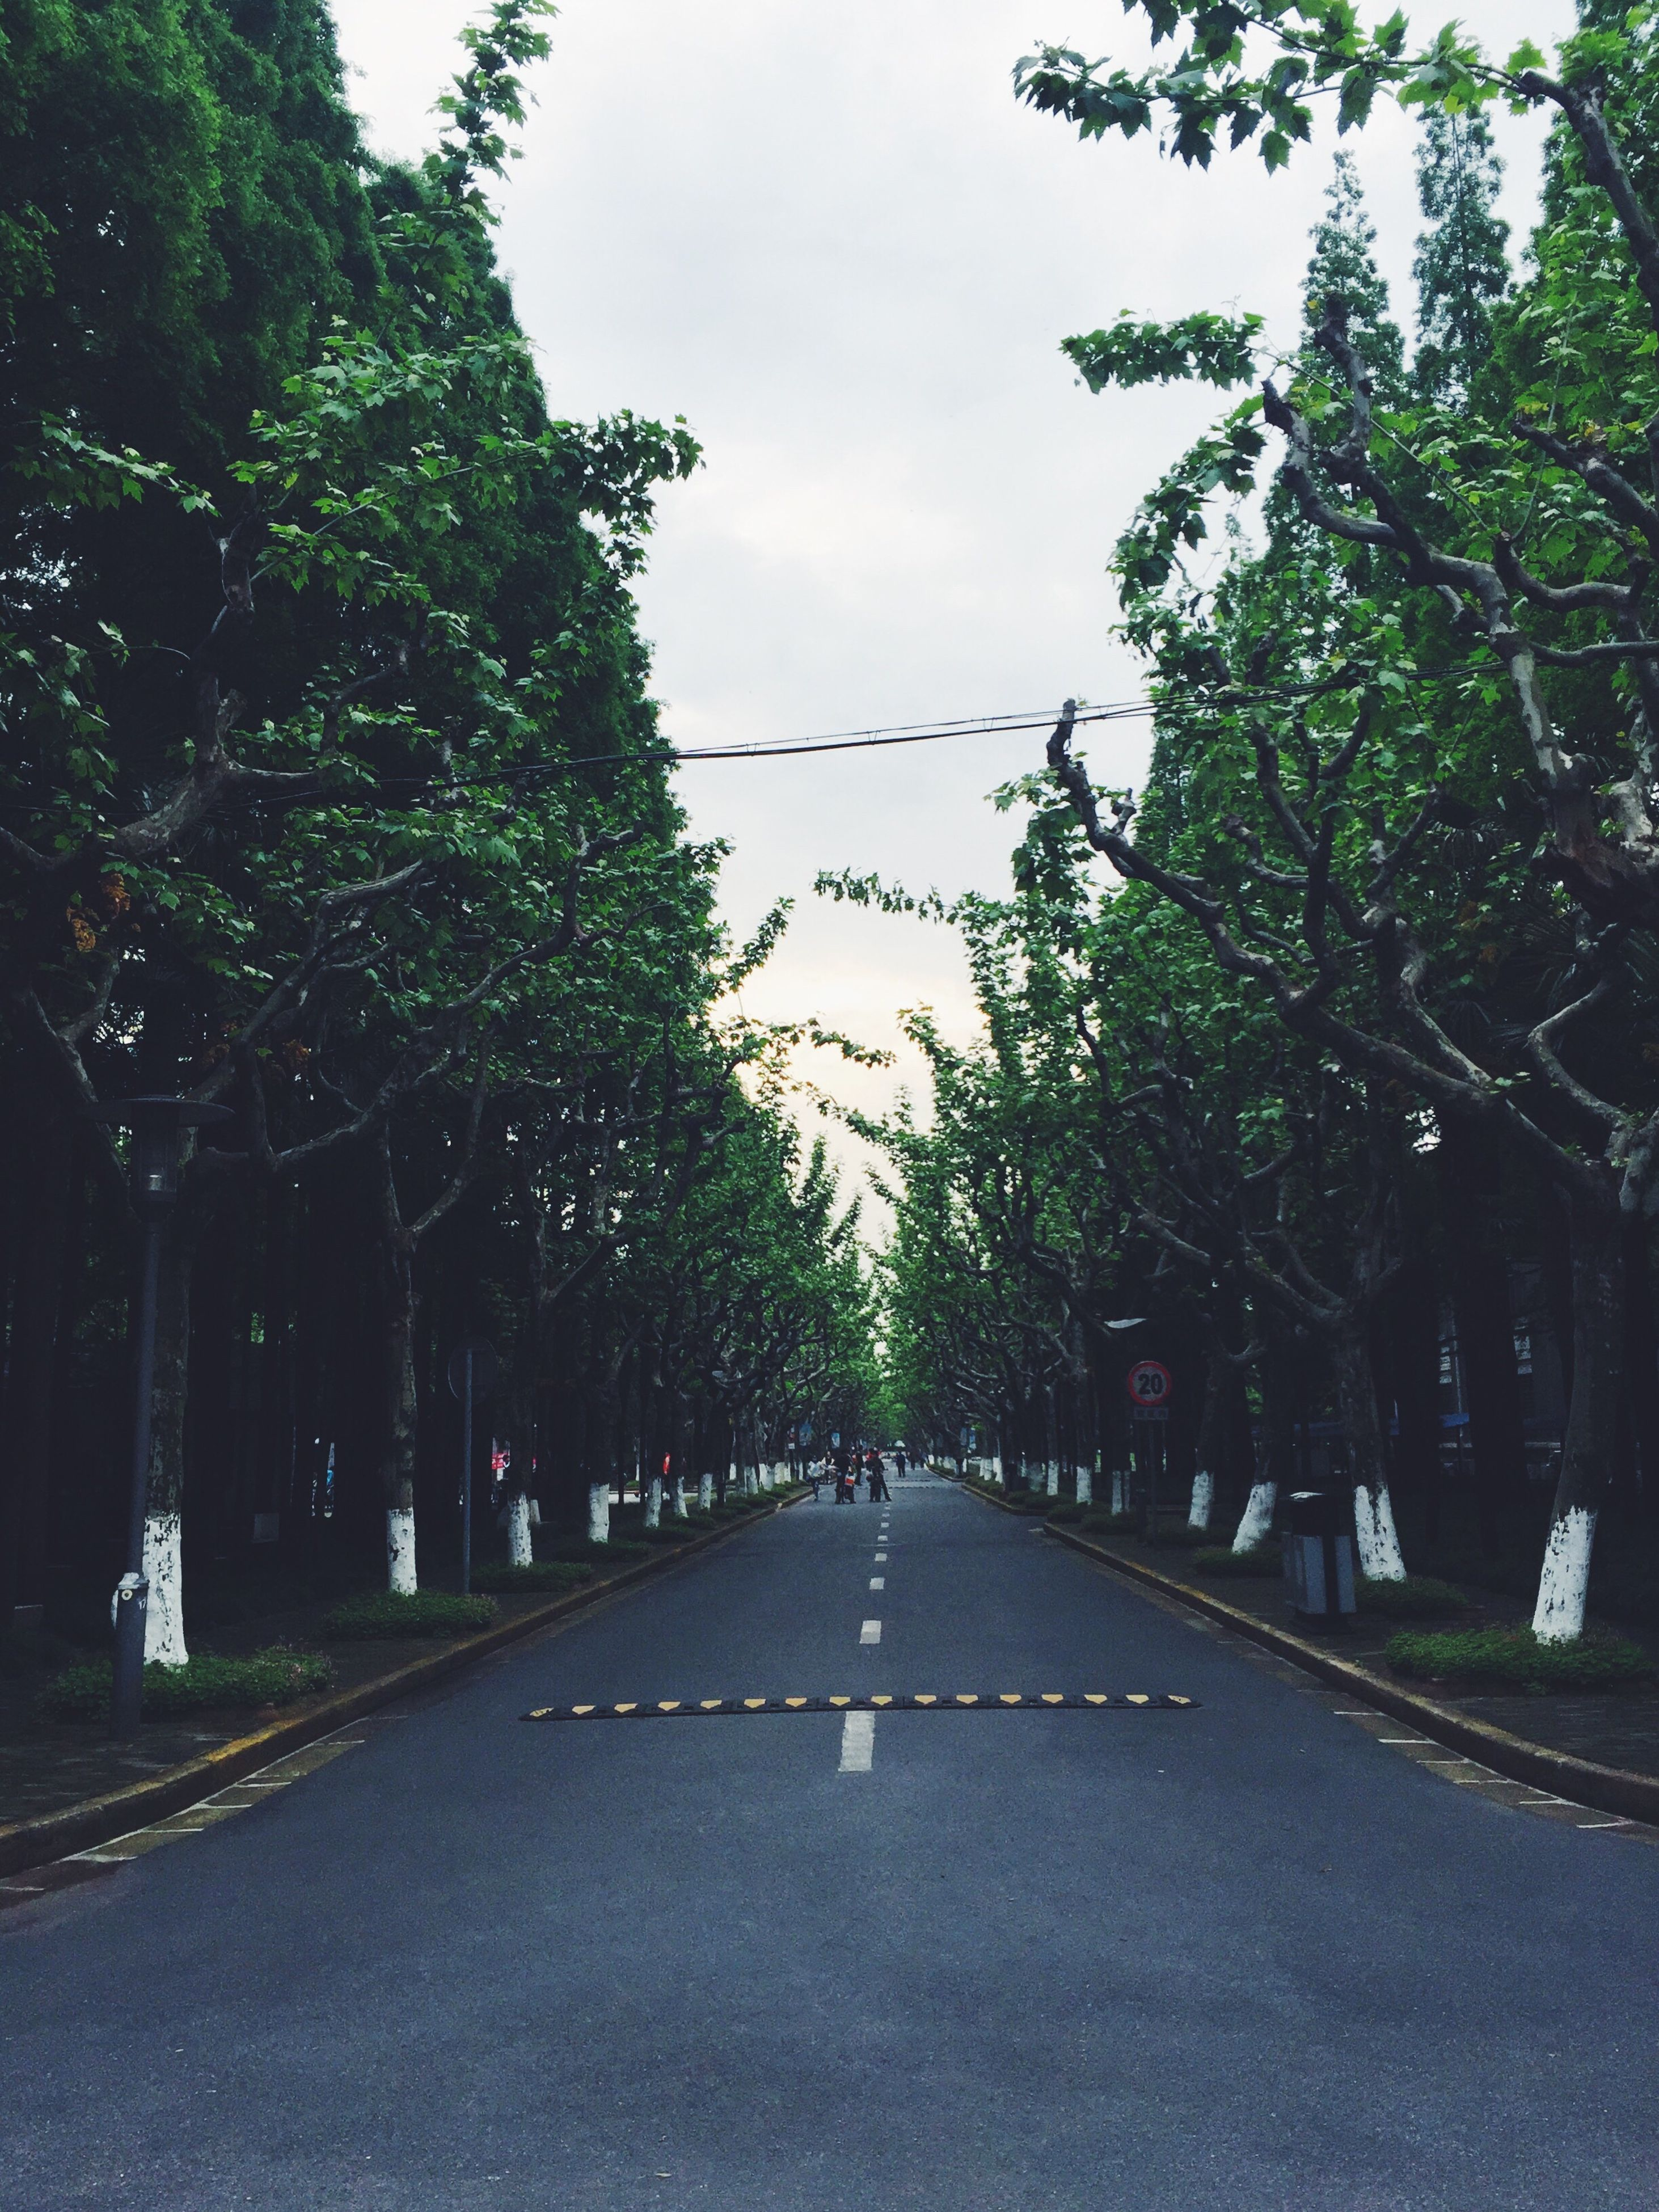 the way forward, tree, diminishing perspective, road, transportation, vanishing point, street, treelined, road marking, growth, empty, in a row, empty road, day, green color, outdoors, street light, sky, no people, nature